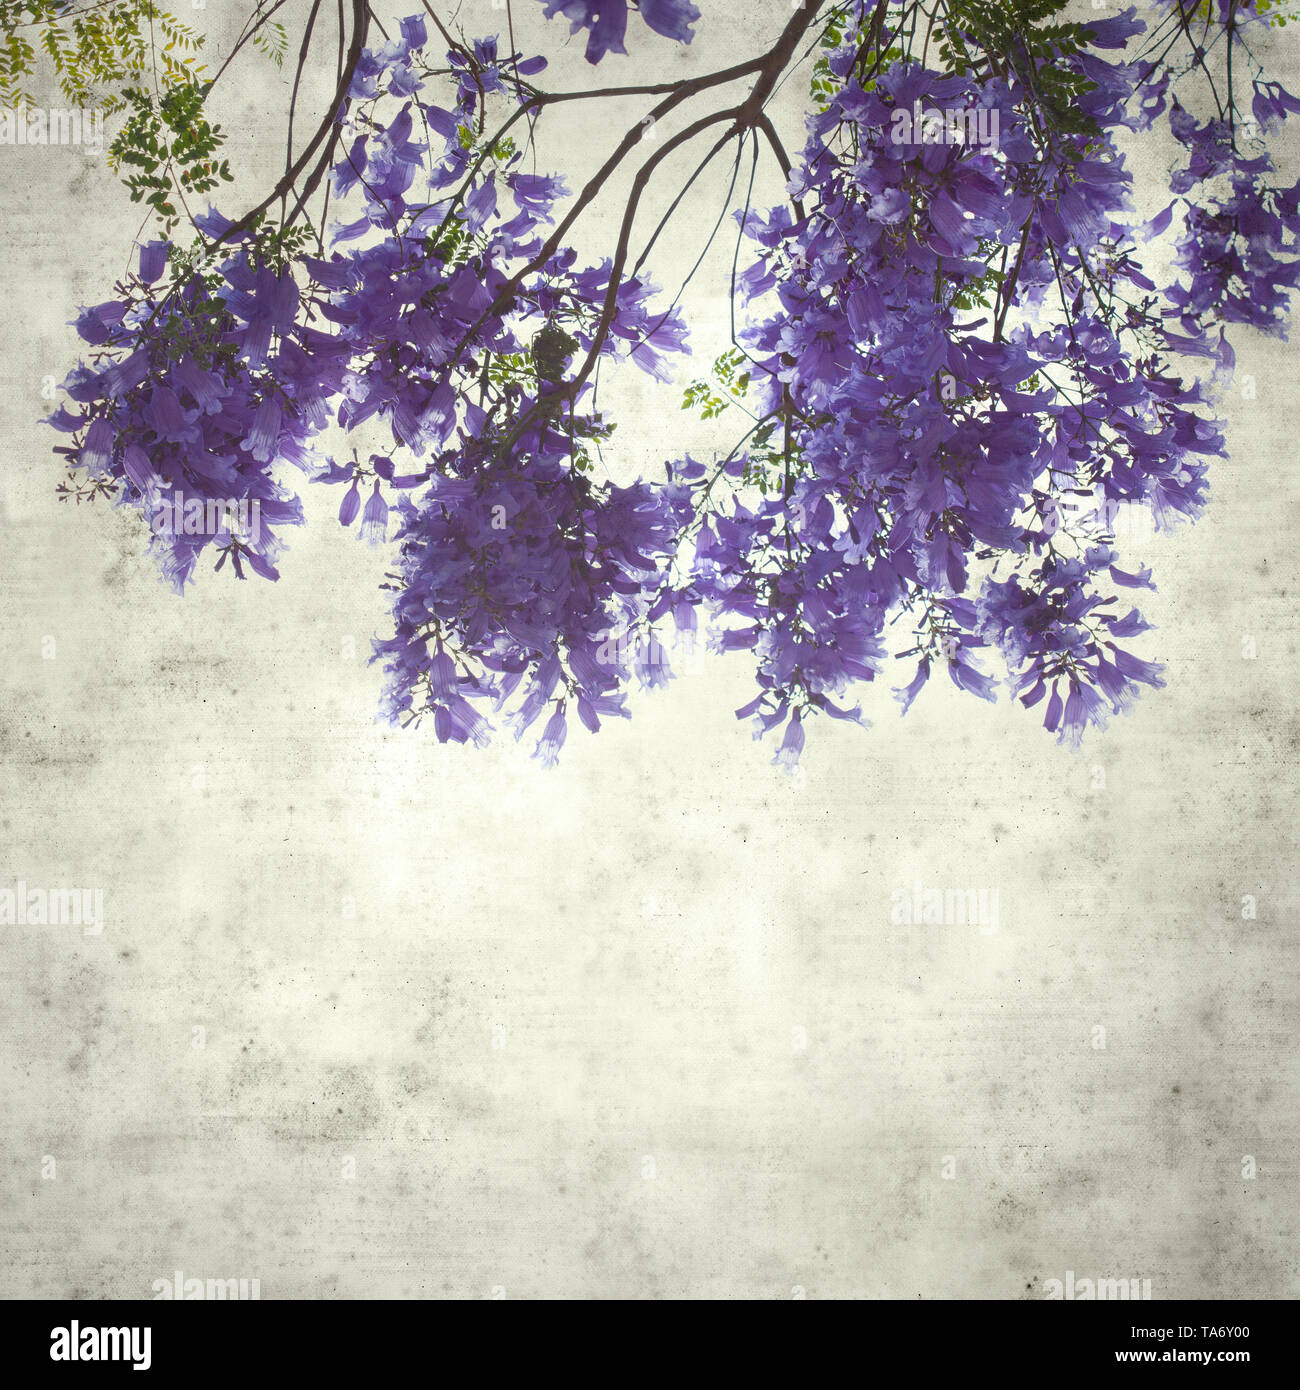 textured stylish old paper background, square, with lilac jacaranda flowers - Stock Image